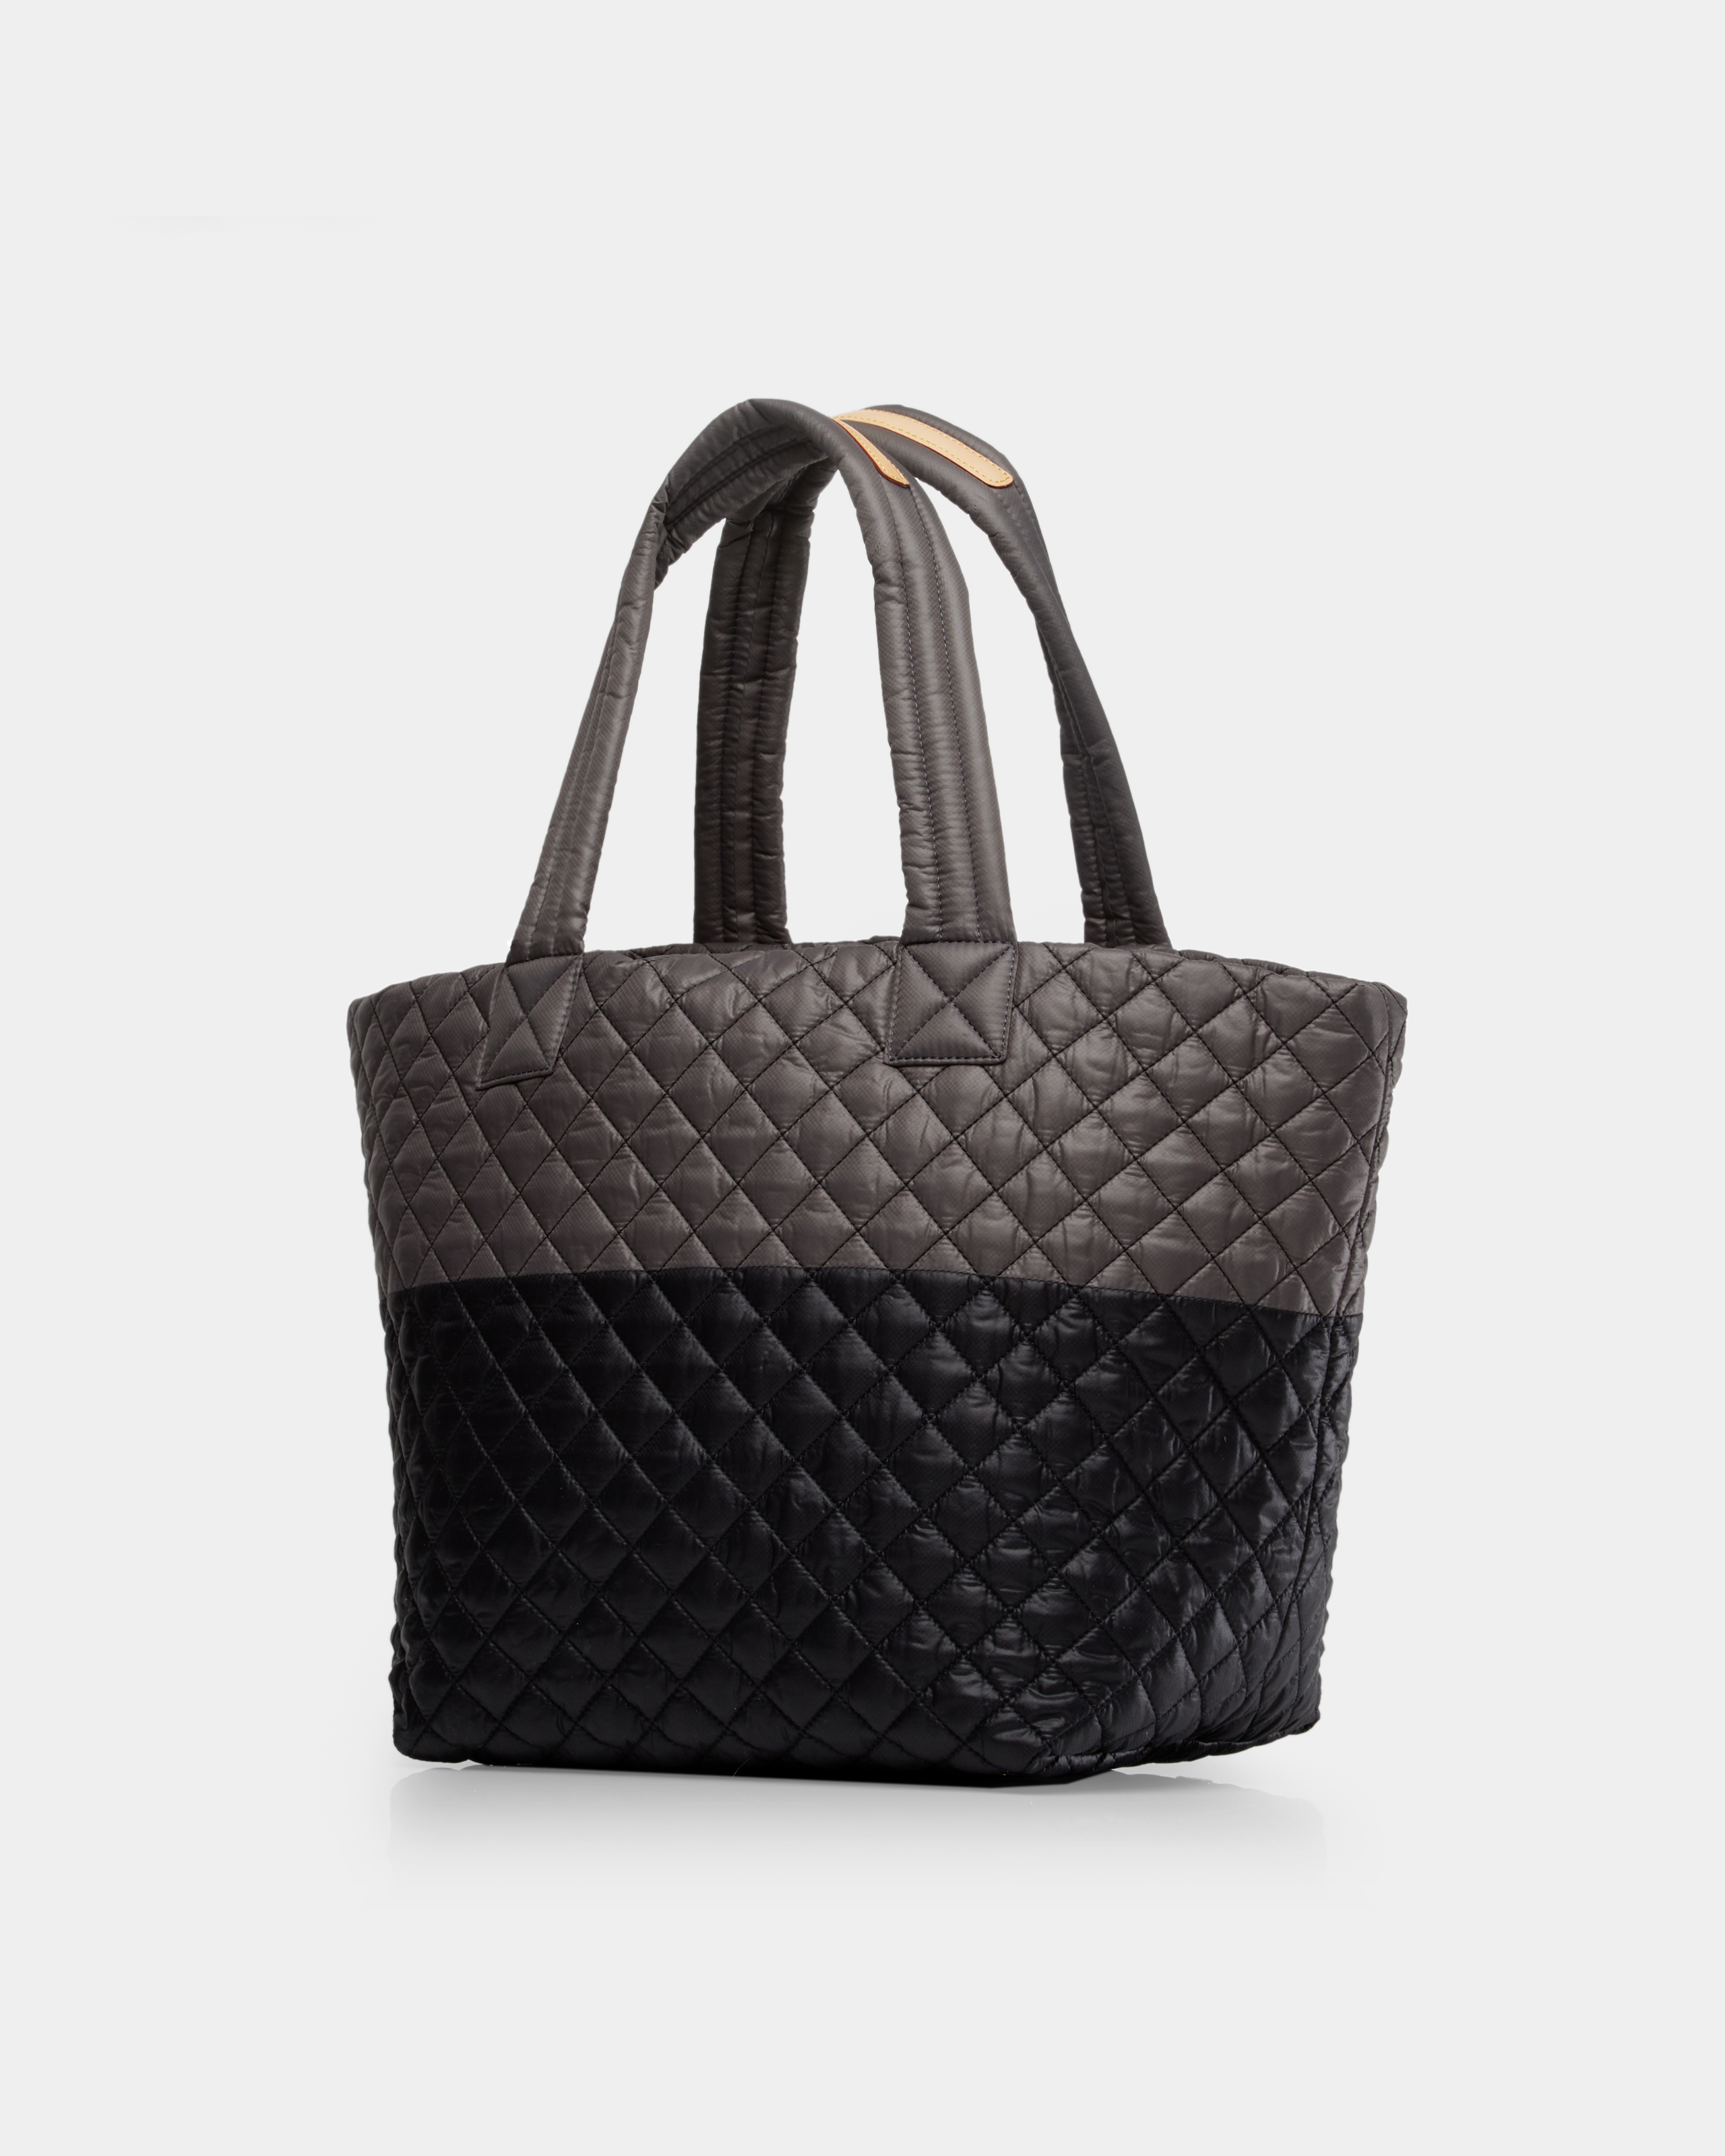 Medium Metro Tote - Black and Magnet Quilted Colorblock (3761329) in color Black/Magnet